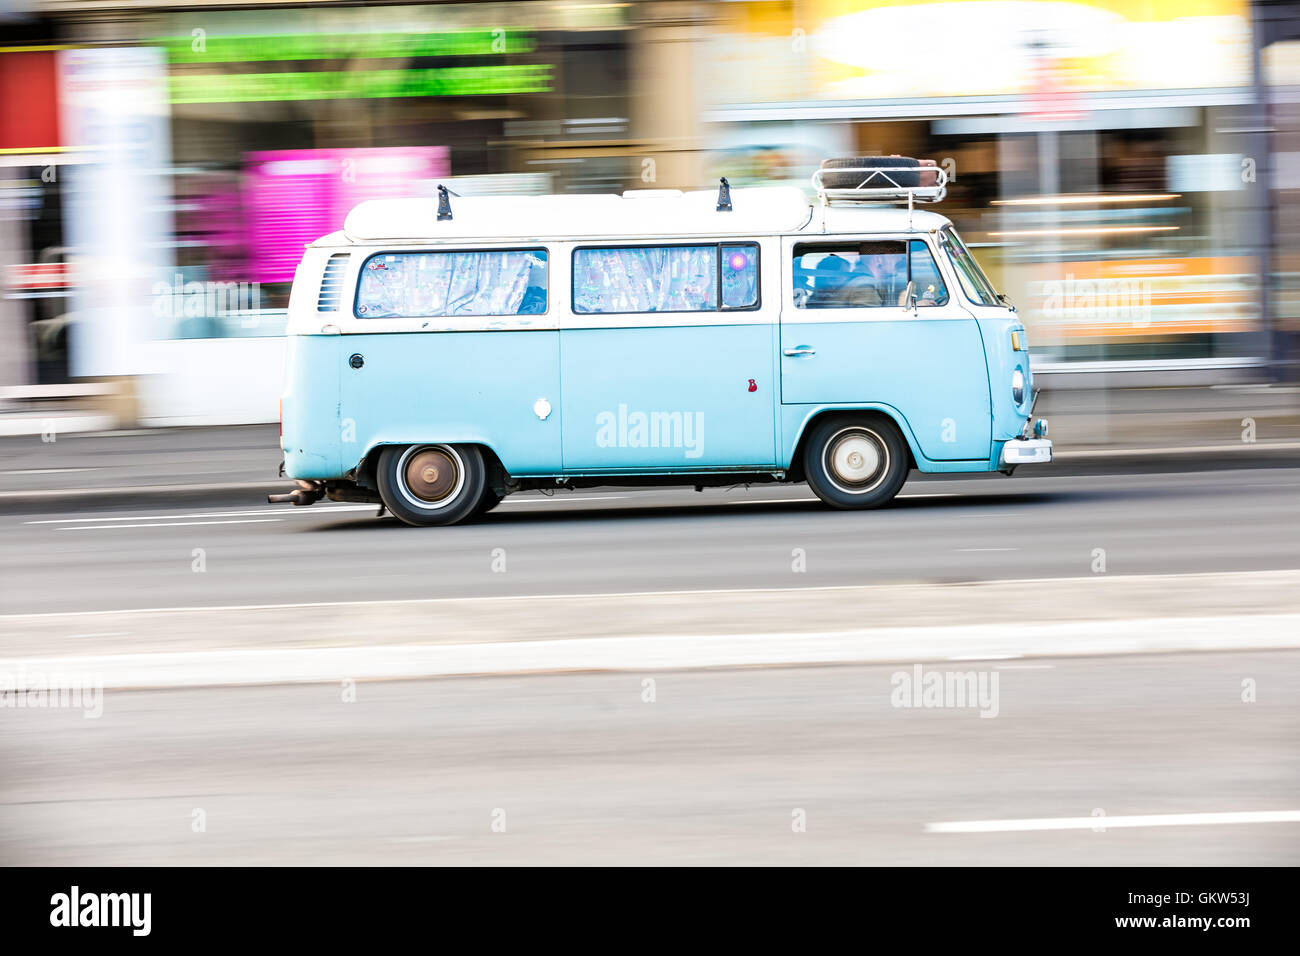 A VW Campervan travelling down the road - Stock Image